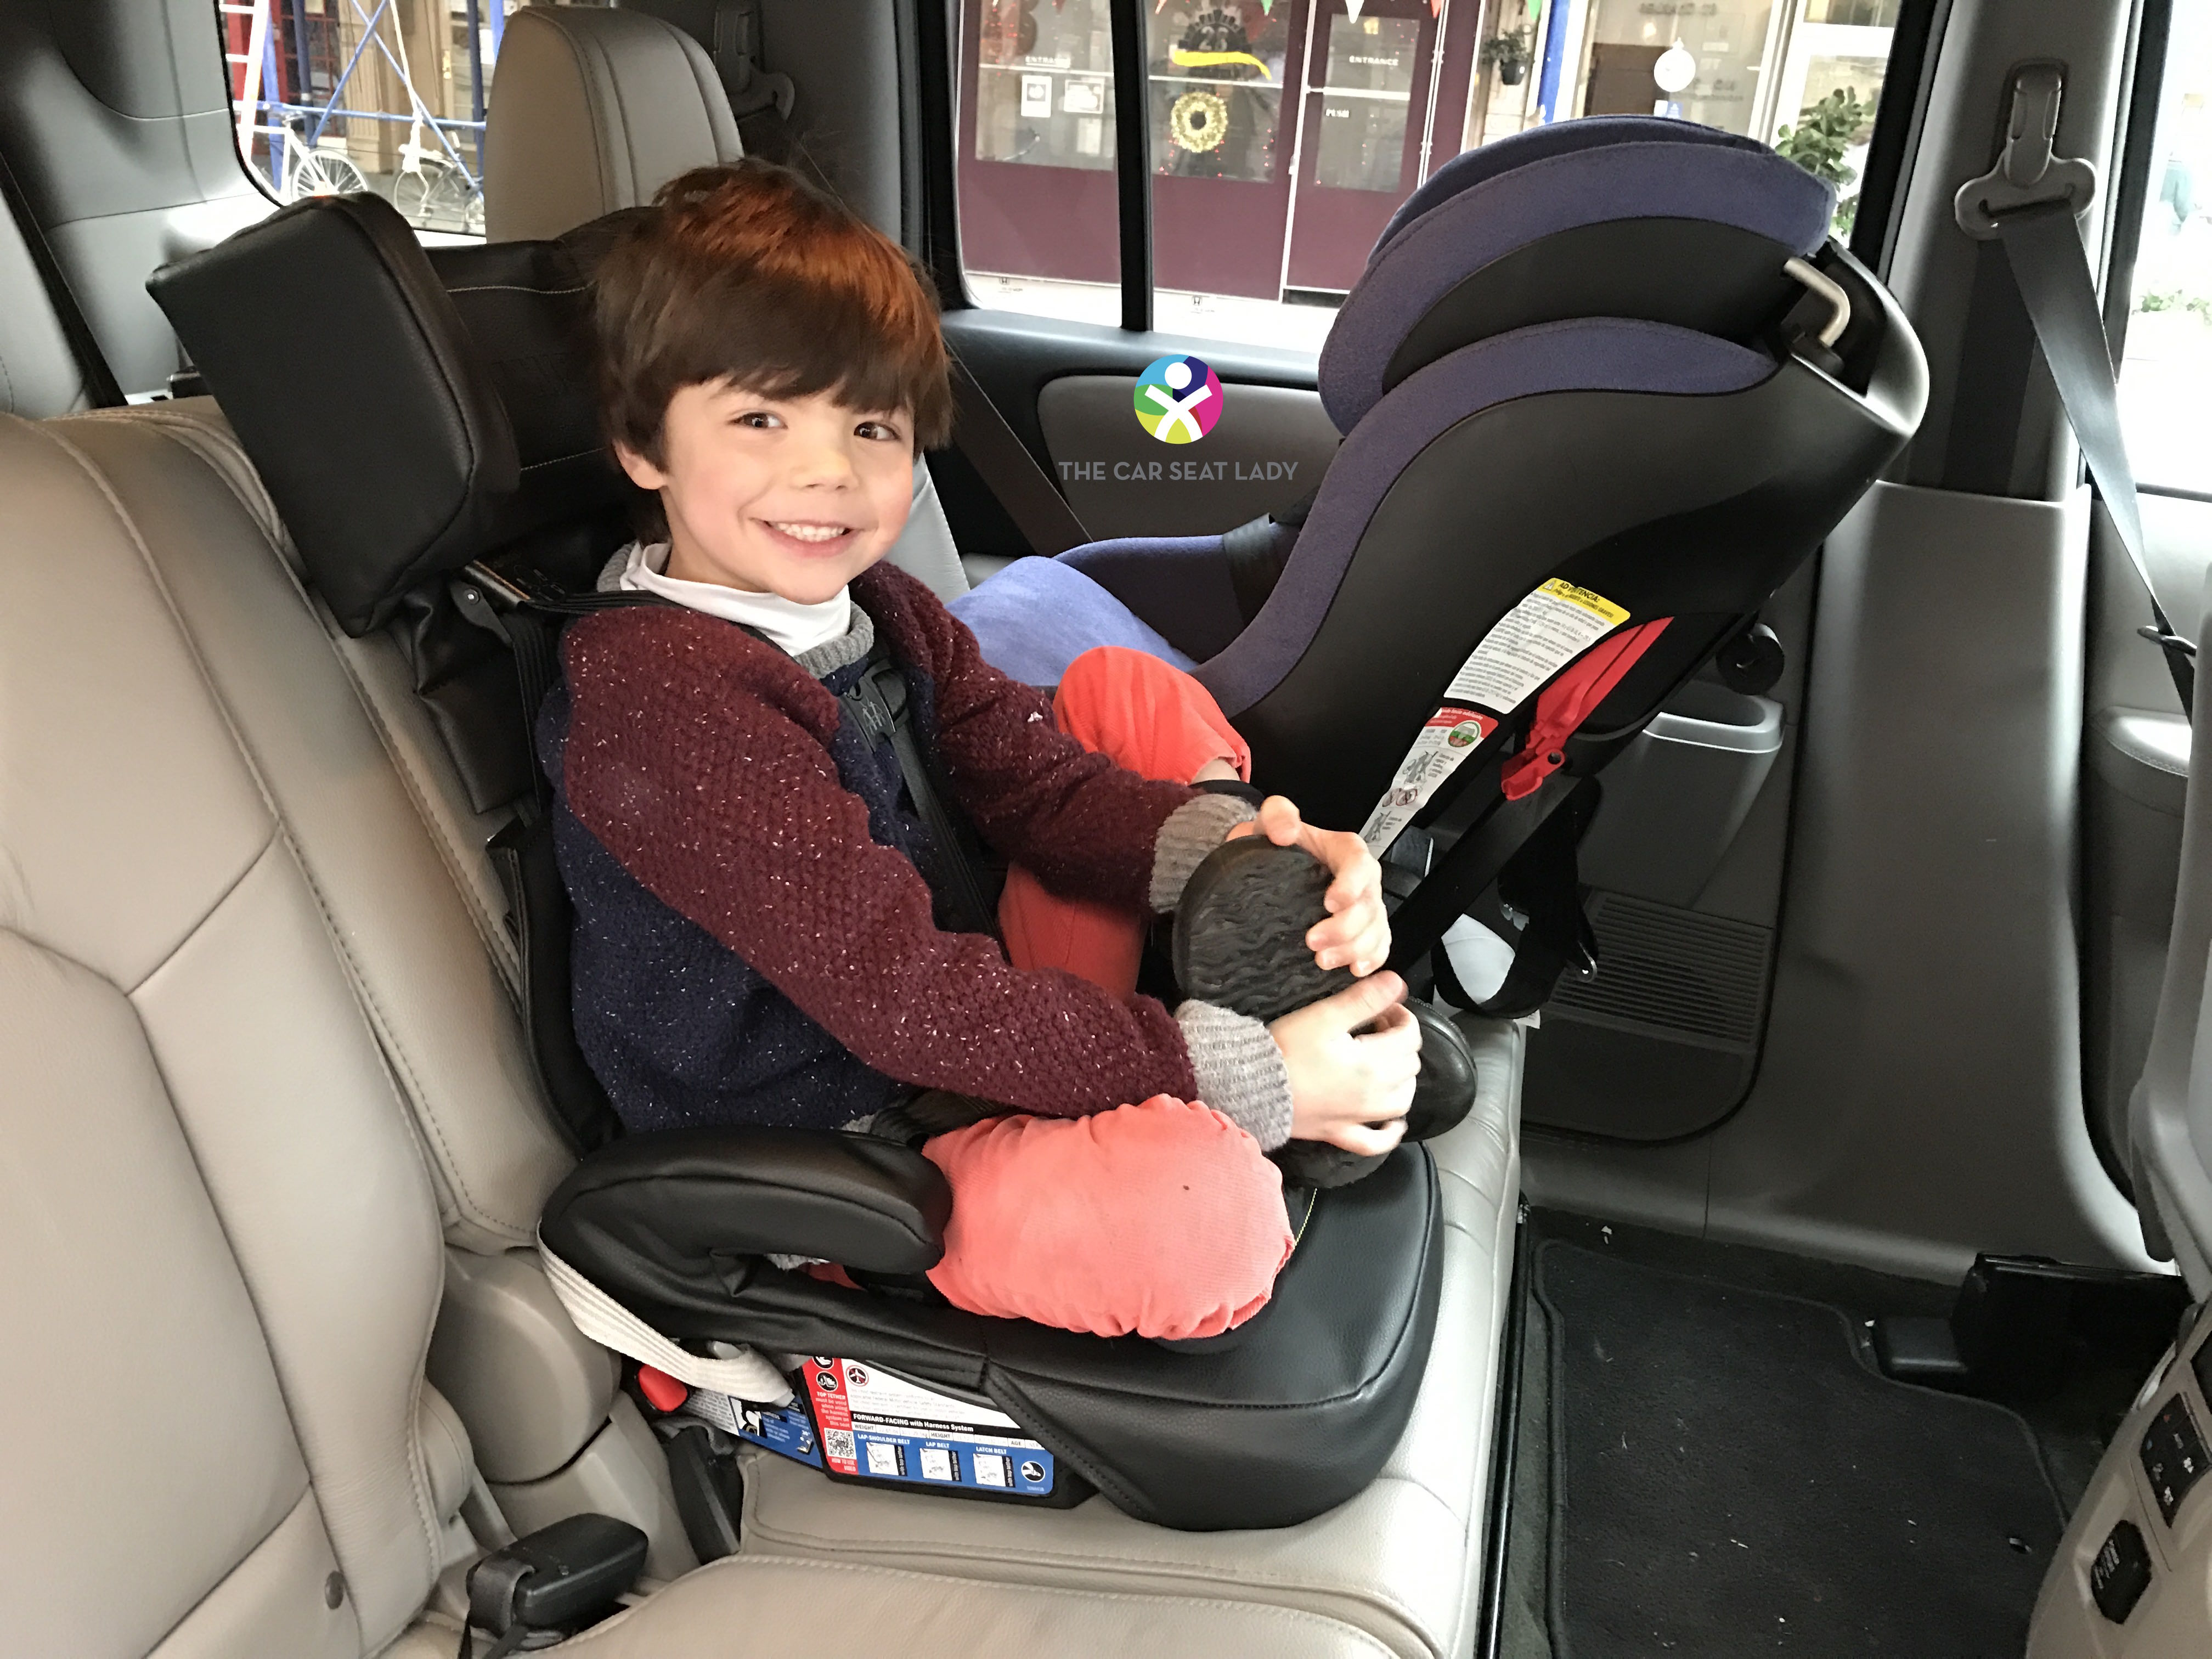 Newborn Car Seat Set Up The Car Seat Ladywhere Should I Install My Child S Car Seat